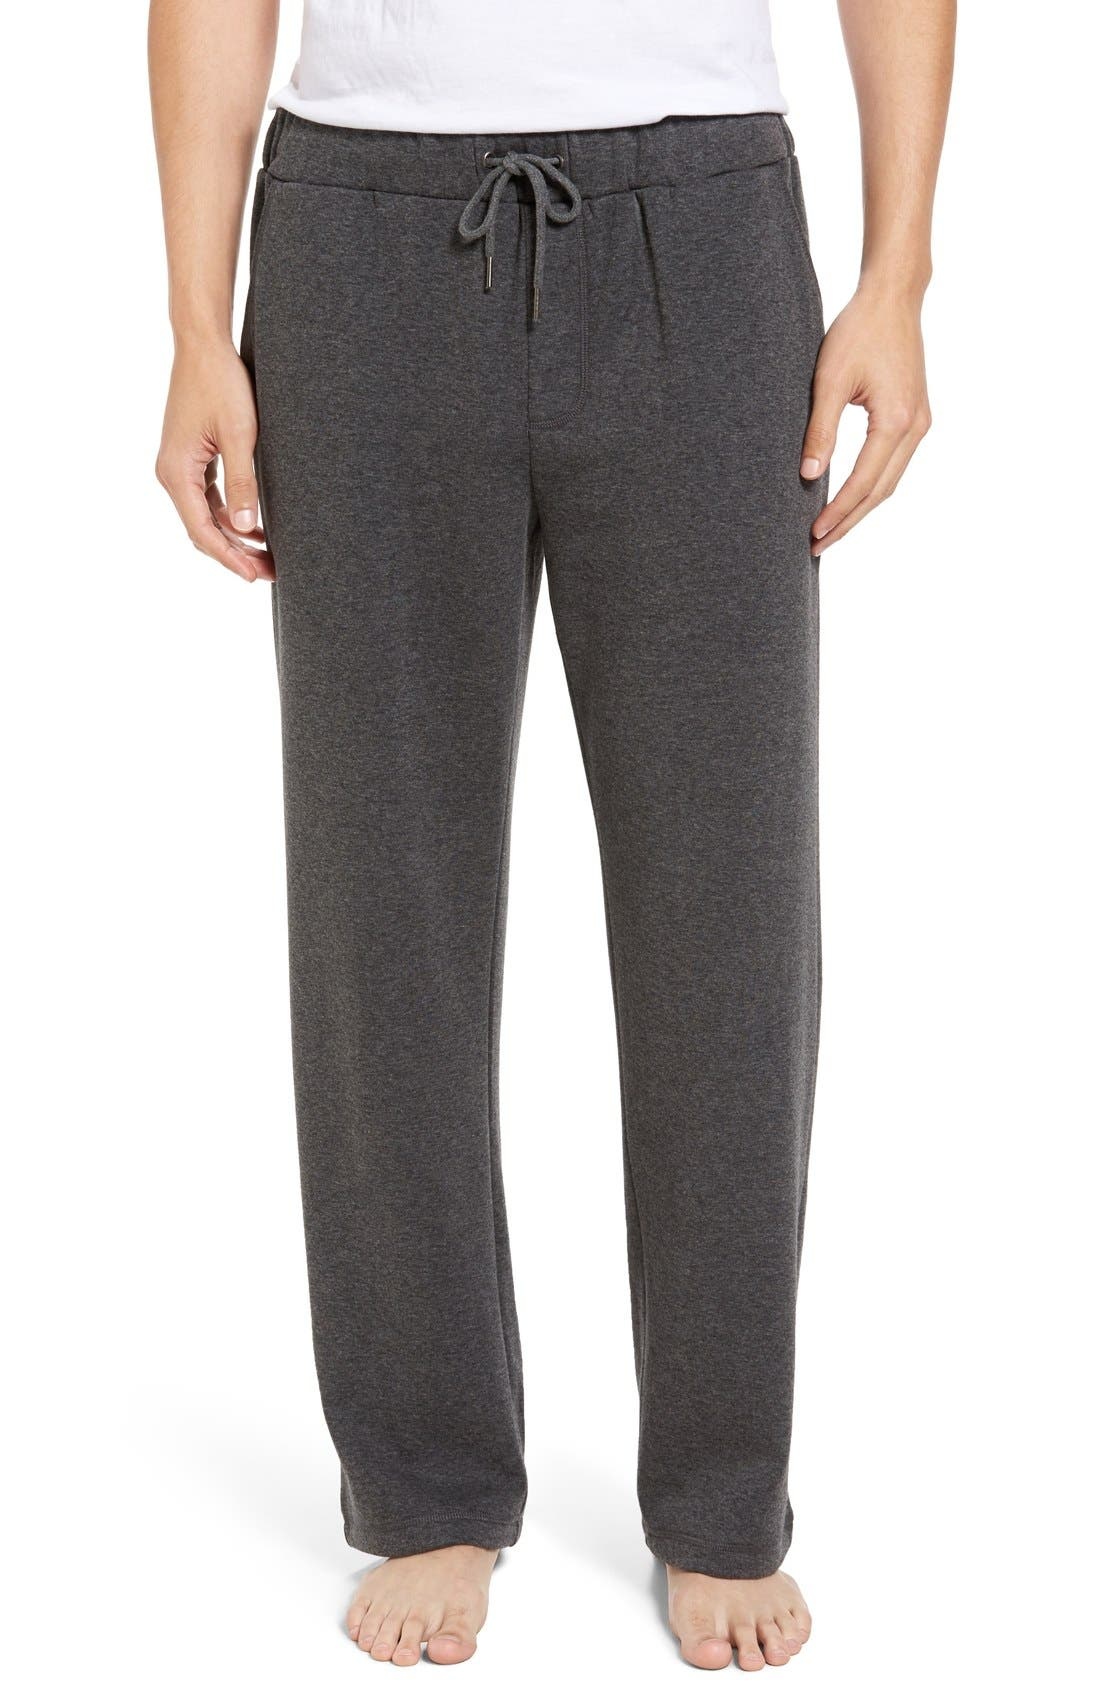 Fleece Lounge Pants,                             Main thumbnail 1, color,                             Grey Heather